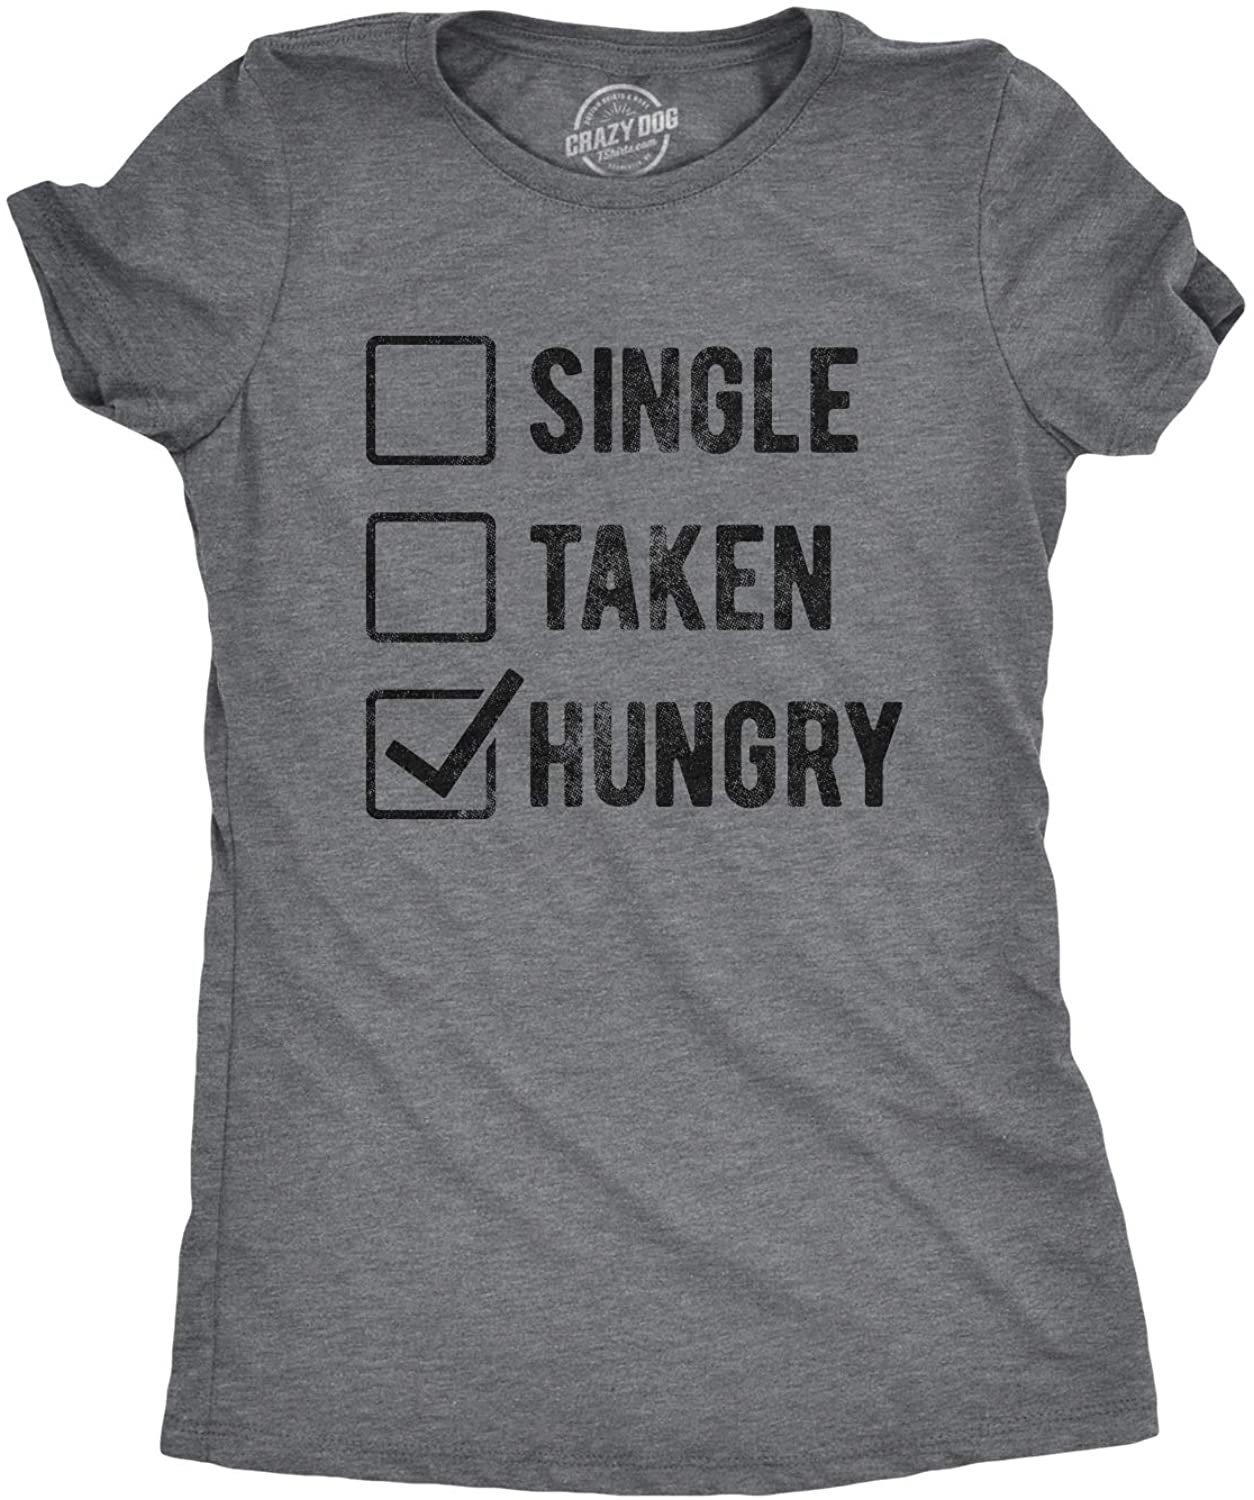 Crazy Dog T-Shirts Womens Single Taken Hungry Tshirt Funny Relationship Status Tee